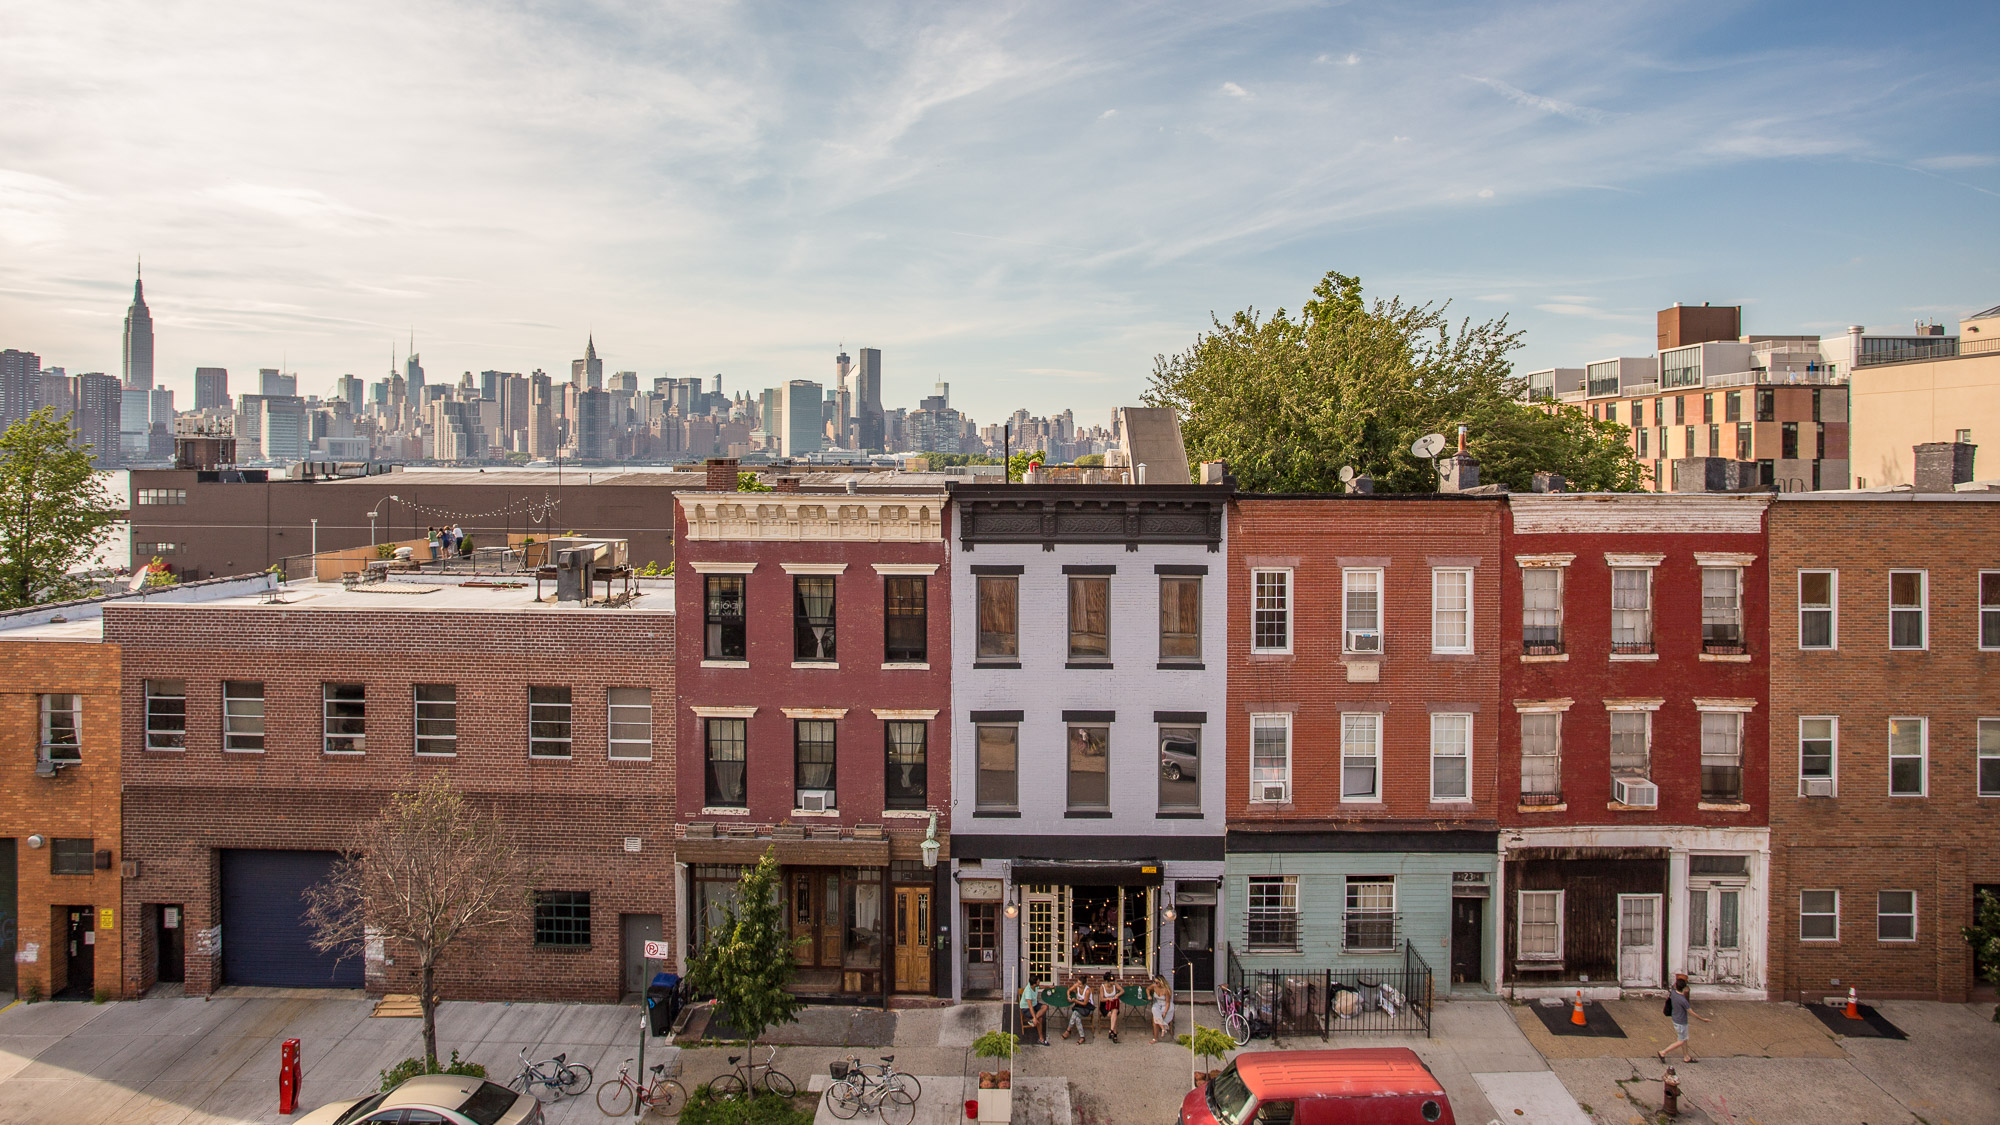 Nearly half of NYC listings are within a block of construction